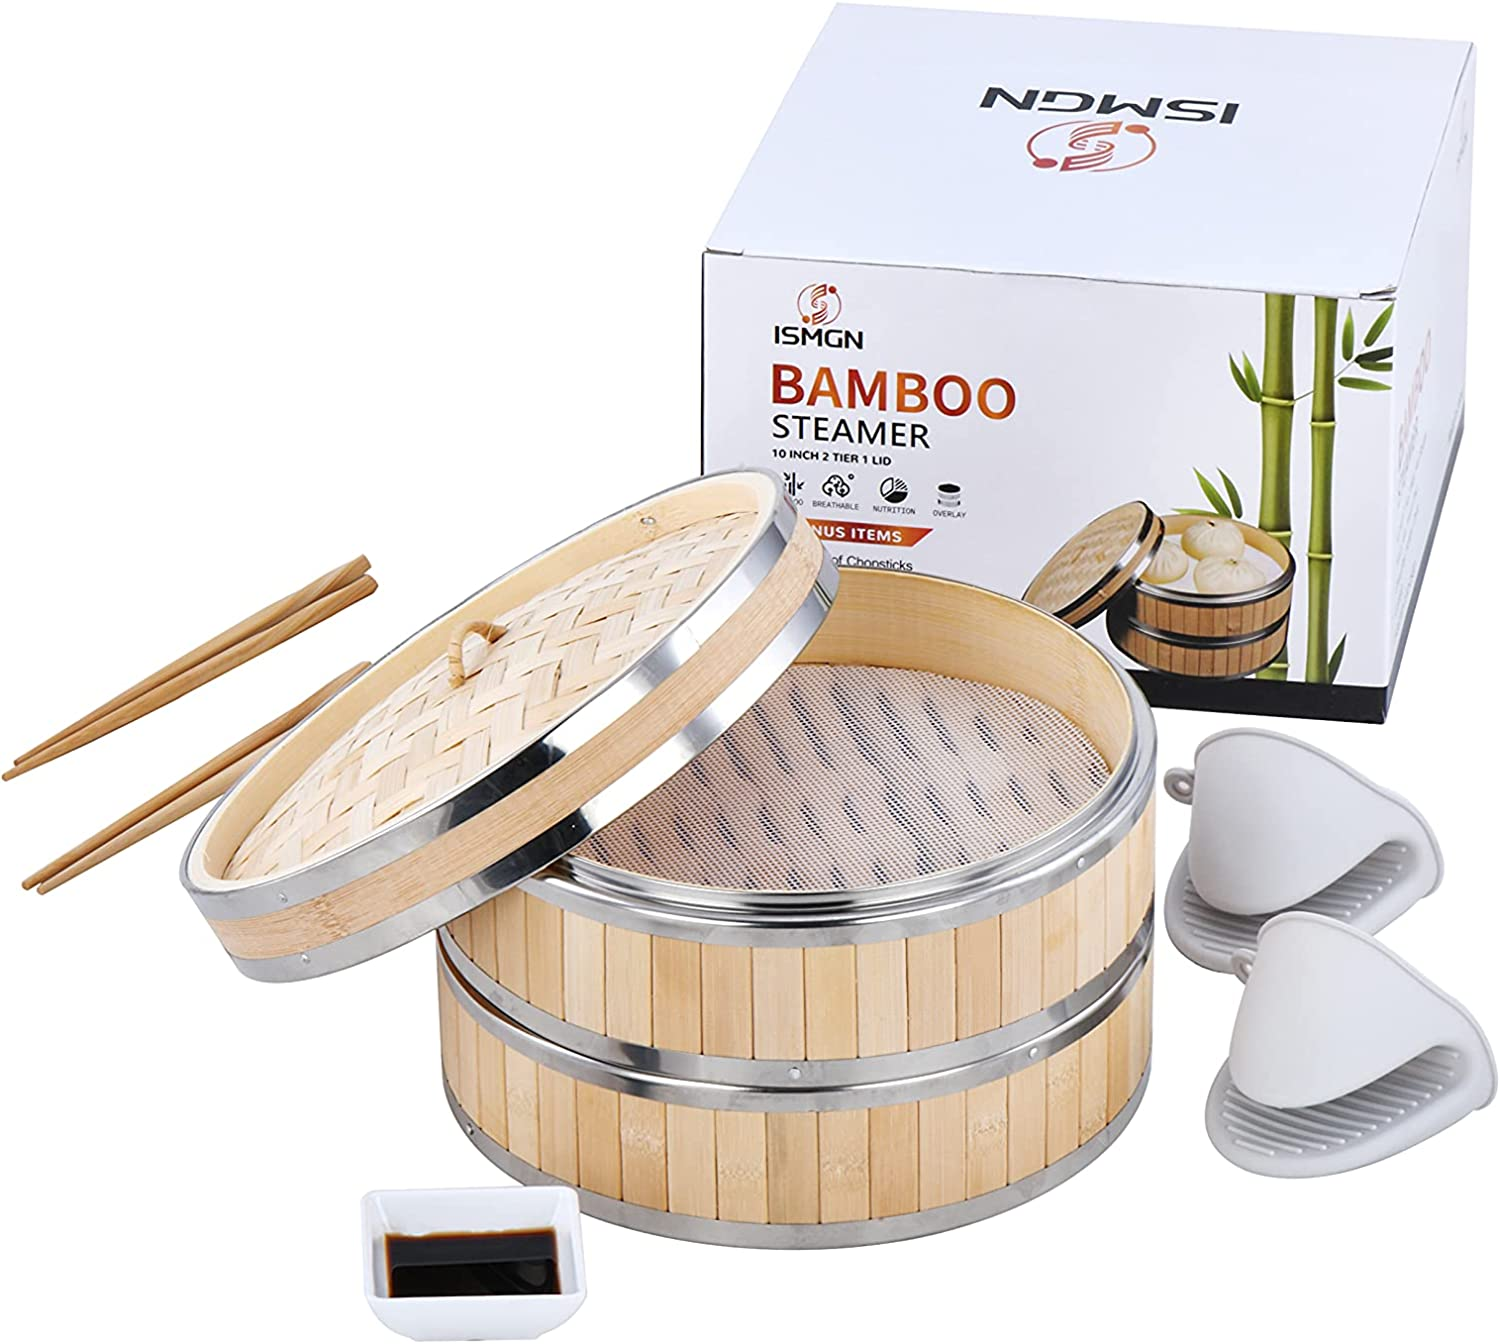 10 Inch Bamboo Steamer Basket, 2 Tier 1 Lid Bamboo Steamer Basket, Chinese Steamer, Natural Bamboo Food Steamer with 2 Sets of Chopsticks 1 Sauce Dish & 2 Silicone Papers Liners - Steam Cooker